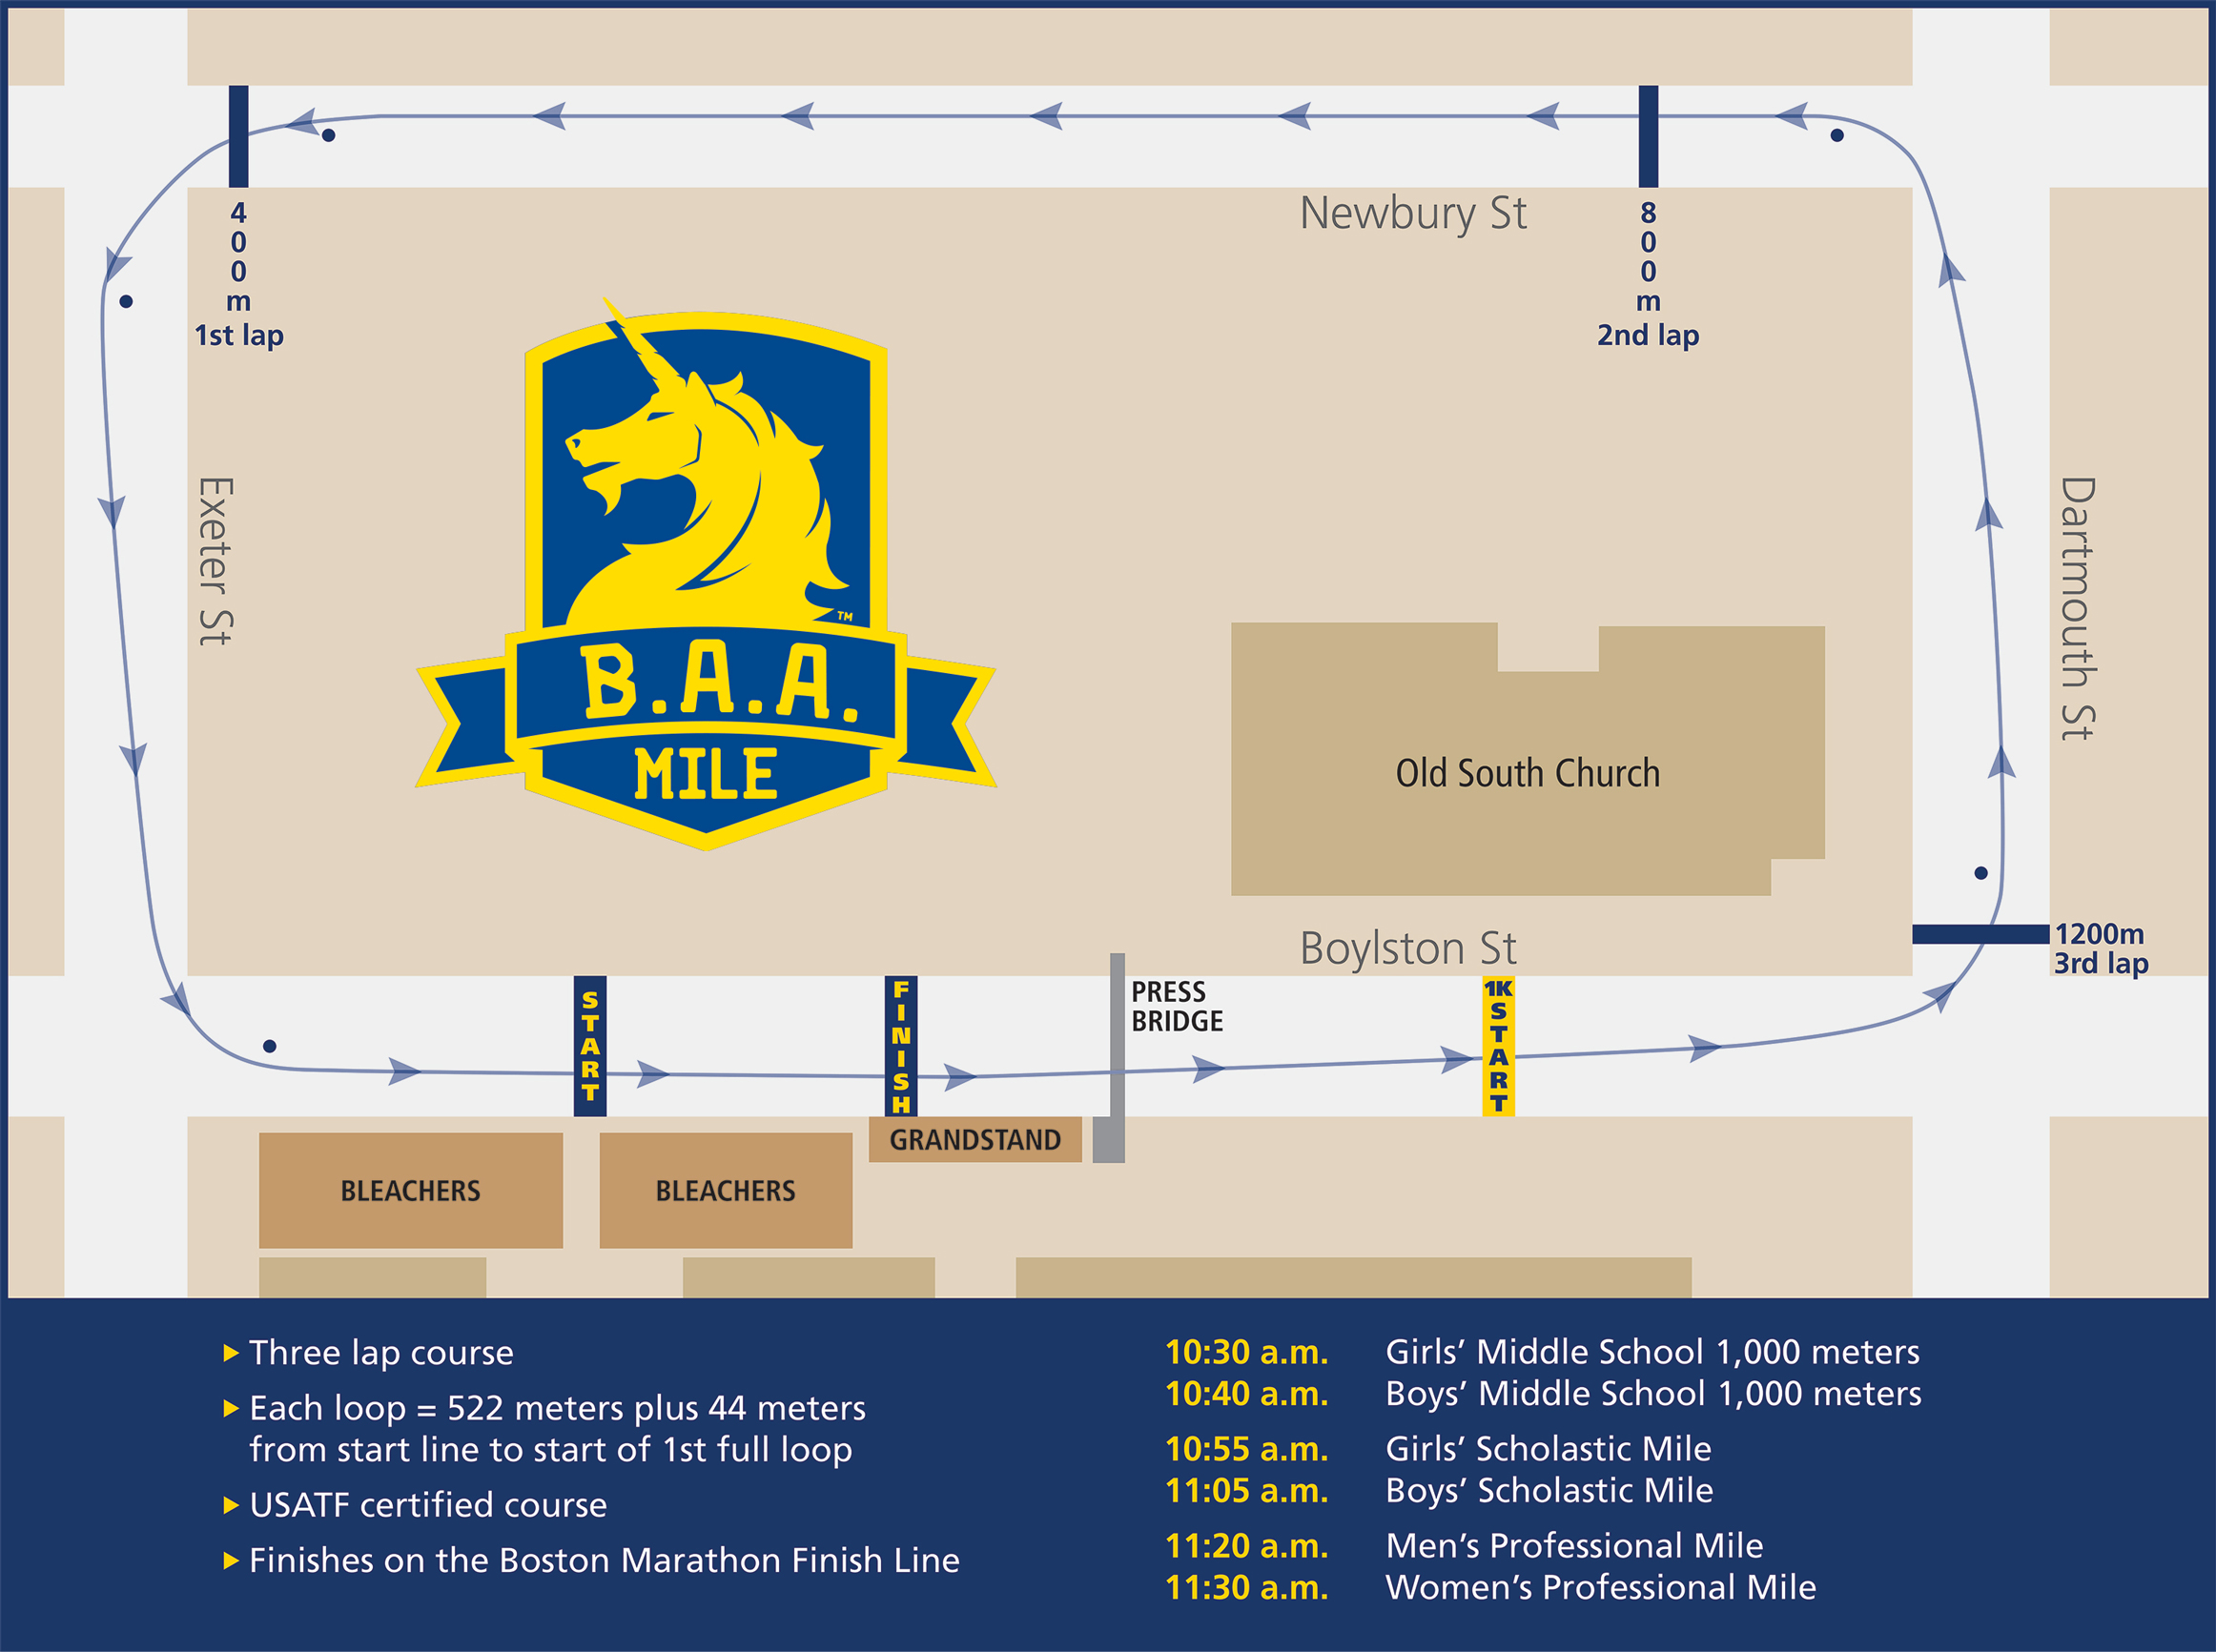 B.A.A. Invitational Mile and 1000m Course